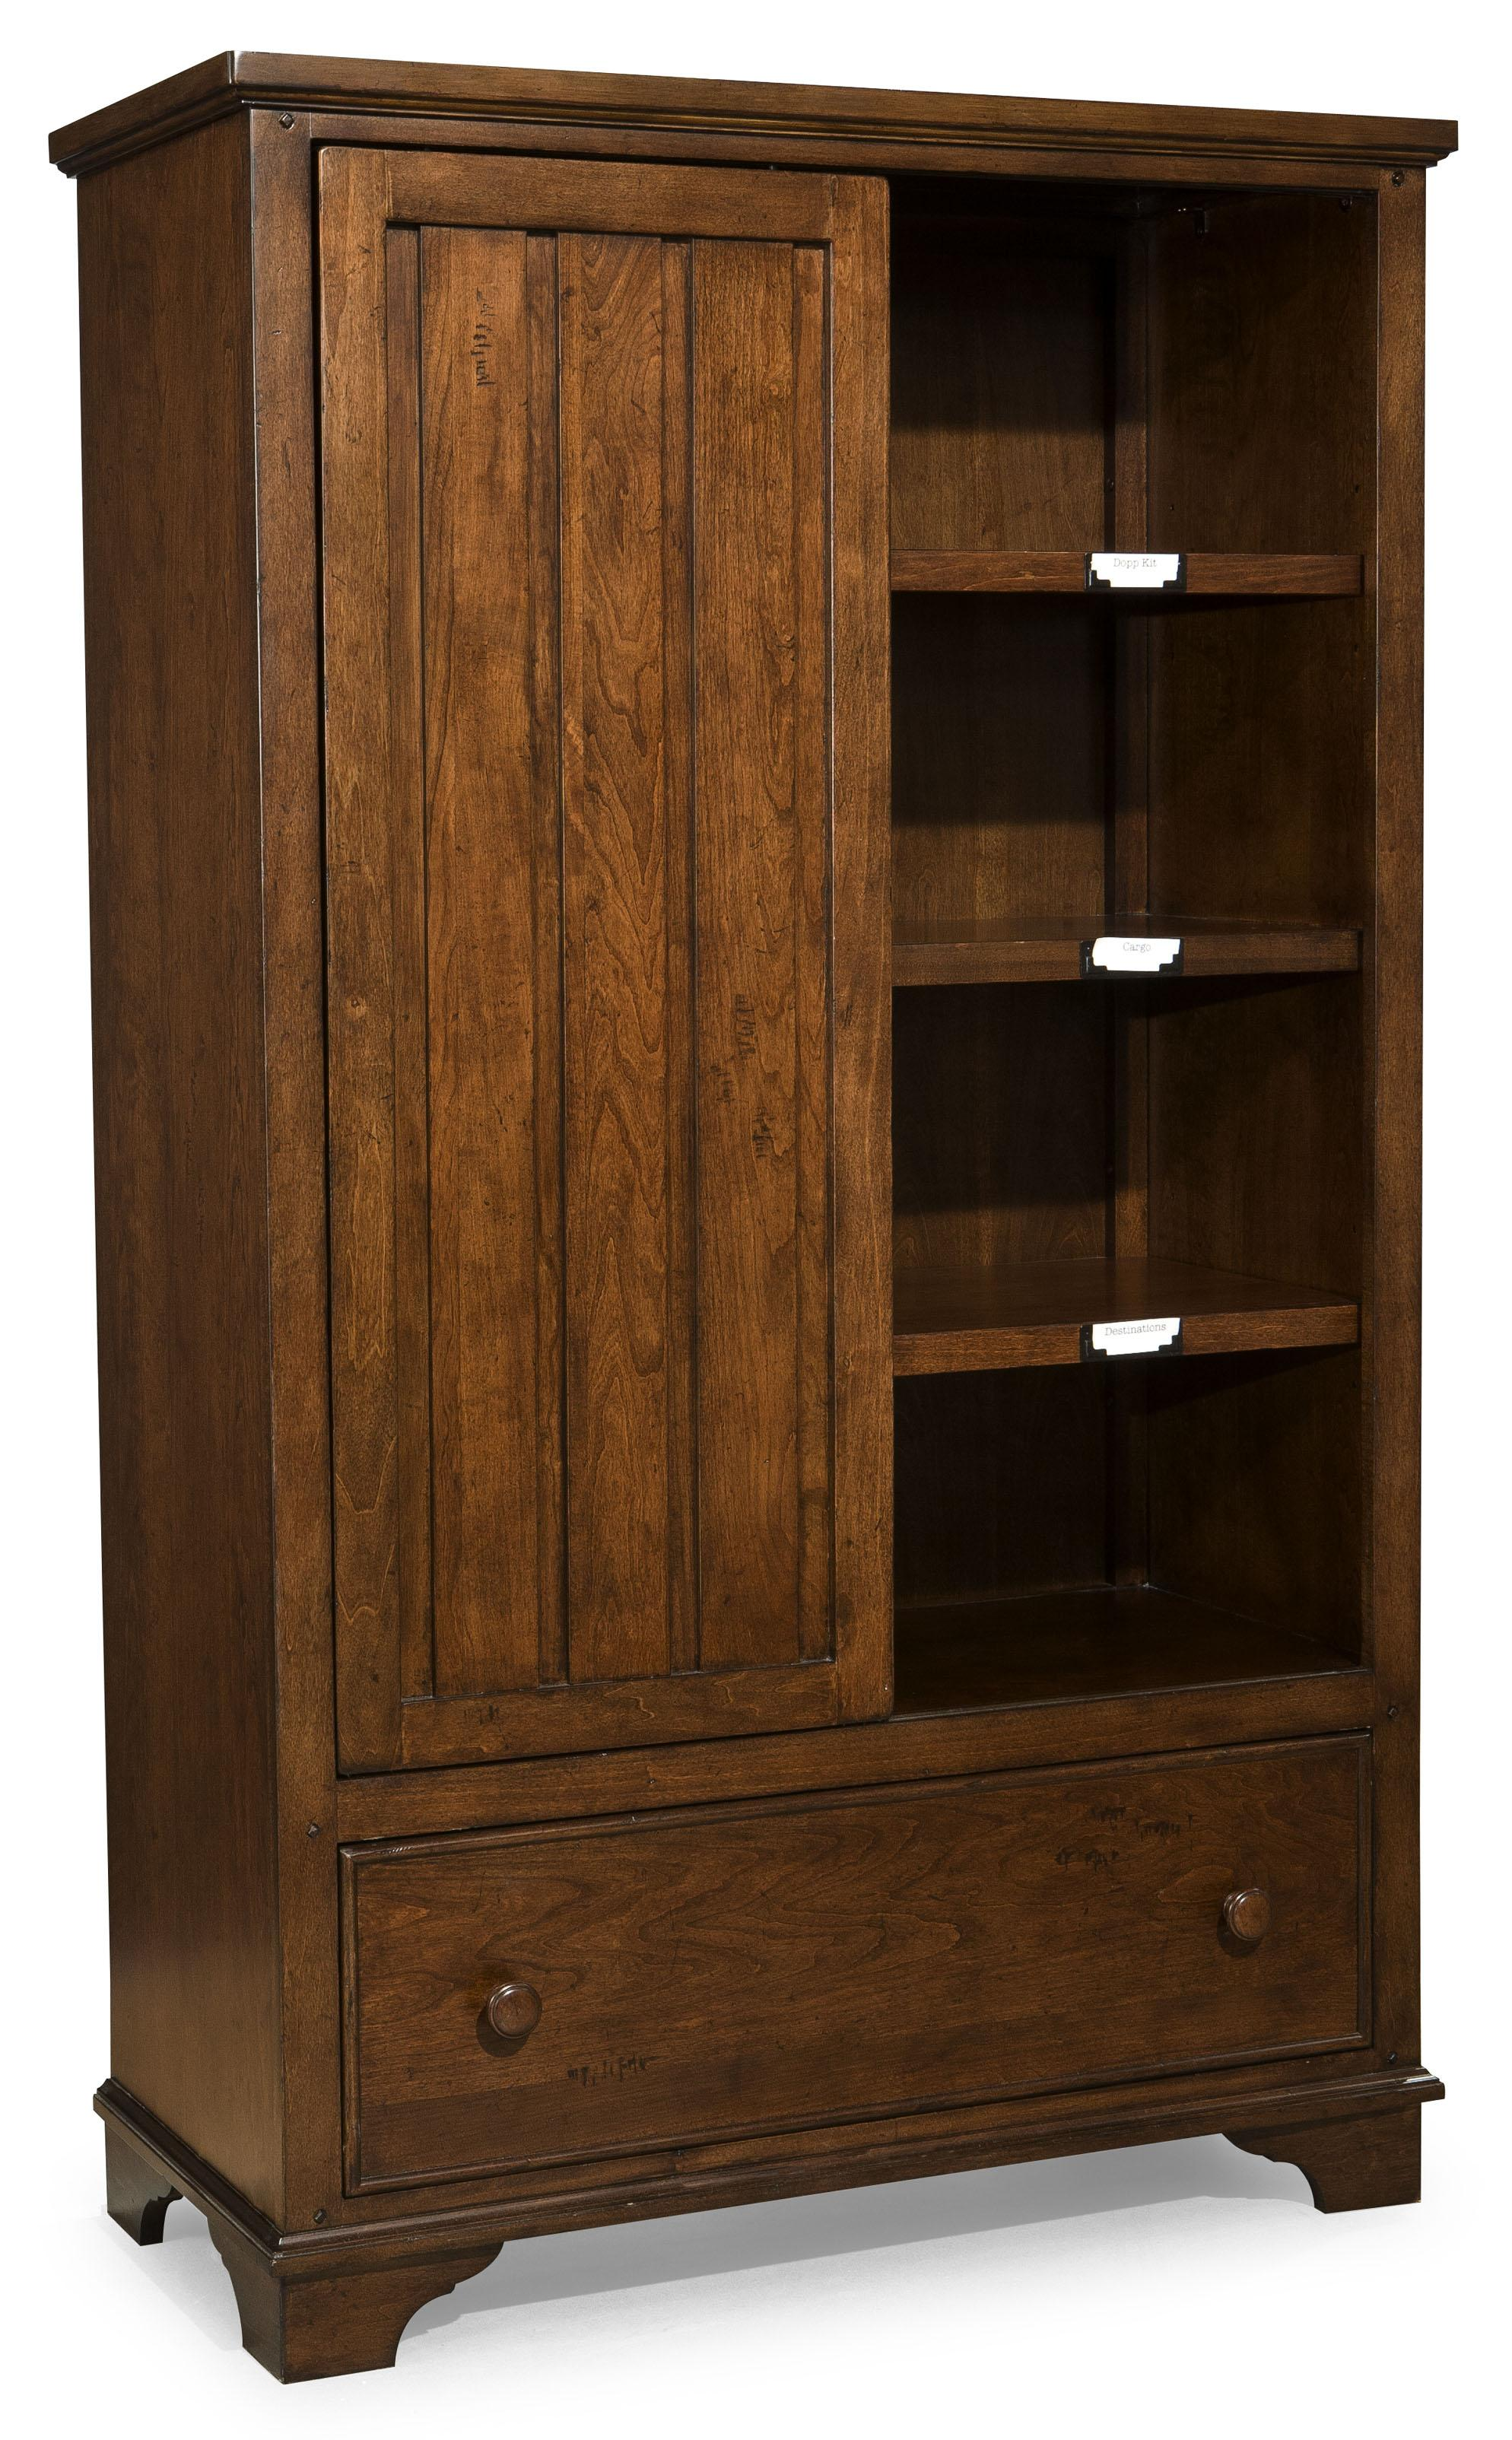 Legacy Classic Kids Dawson's Ridge ONE ONLY-FLOOR SAMPLE! - Item Number: 2960-2500